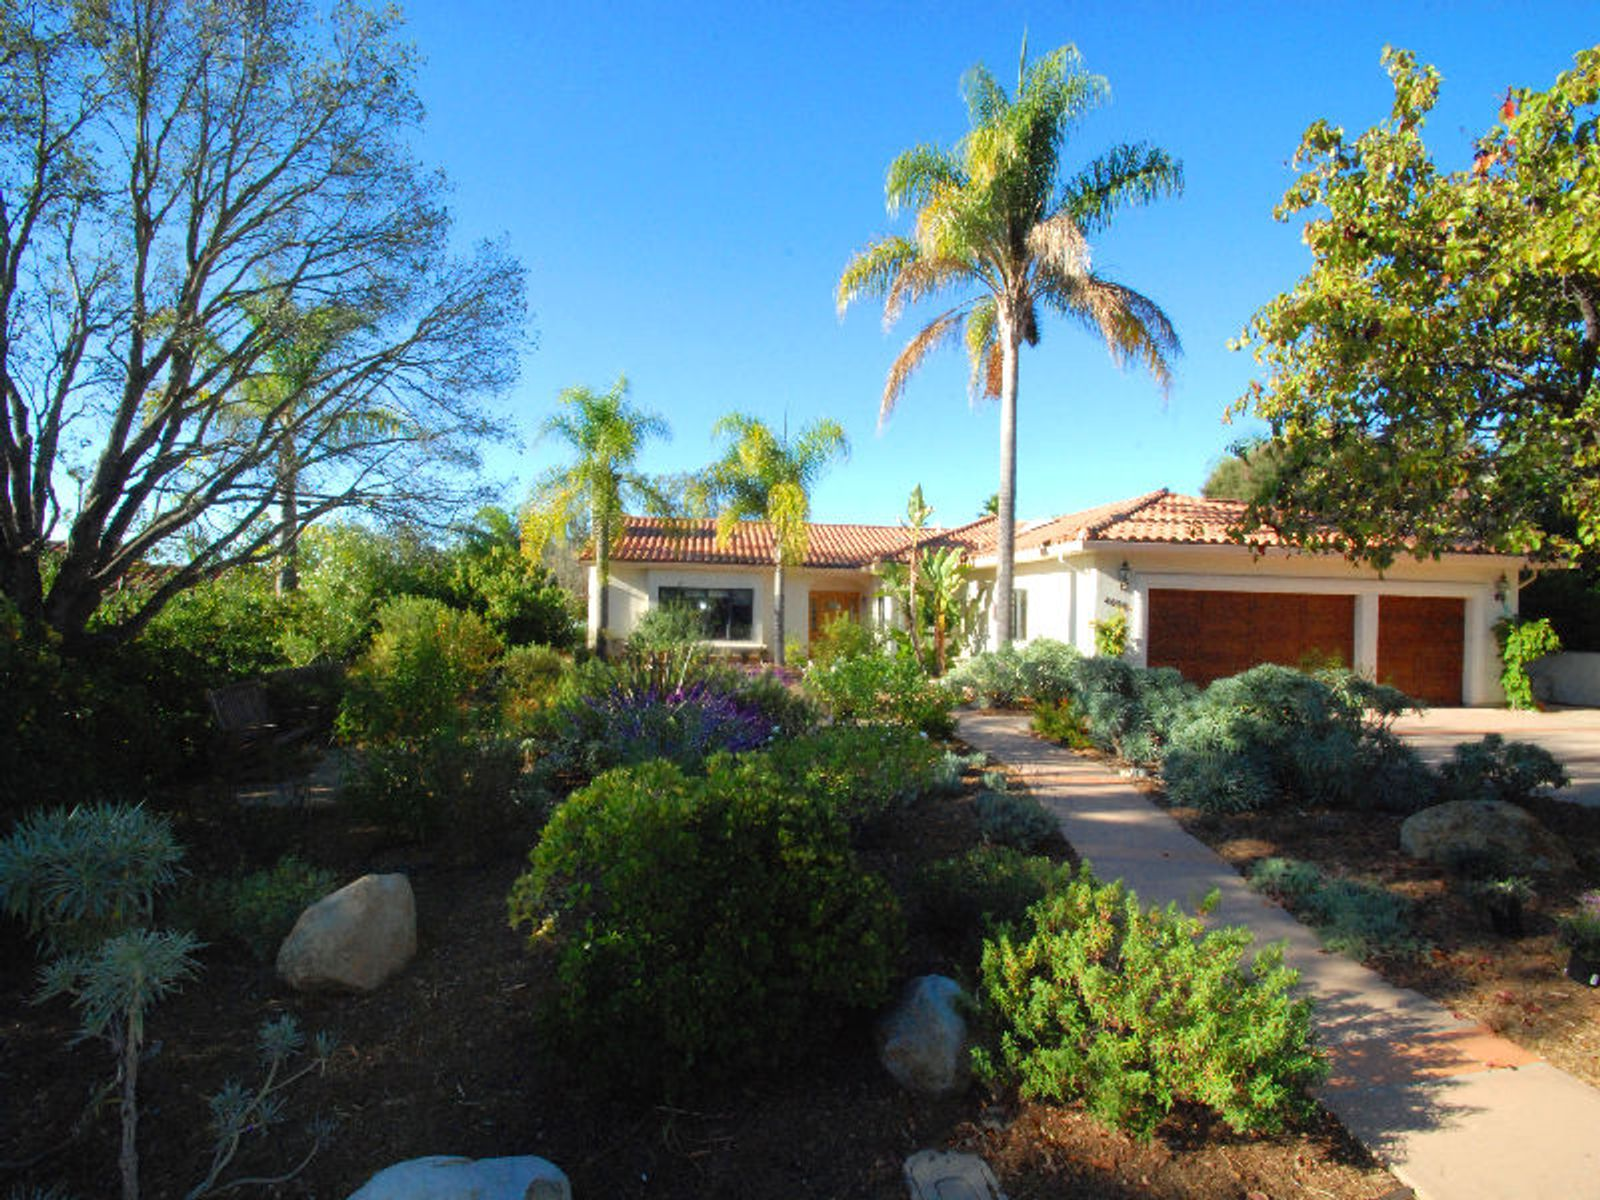 Single Level Mediterranean-style, Santa Barbara CA Single Family Home - Santa Barbara Real Estate